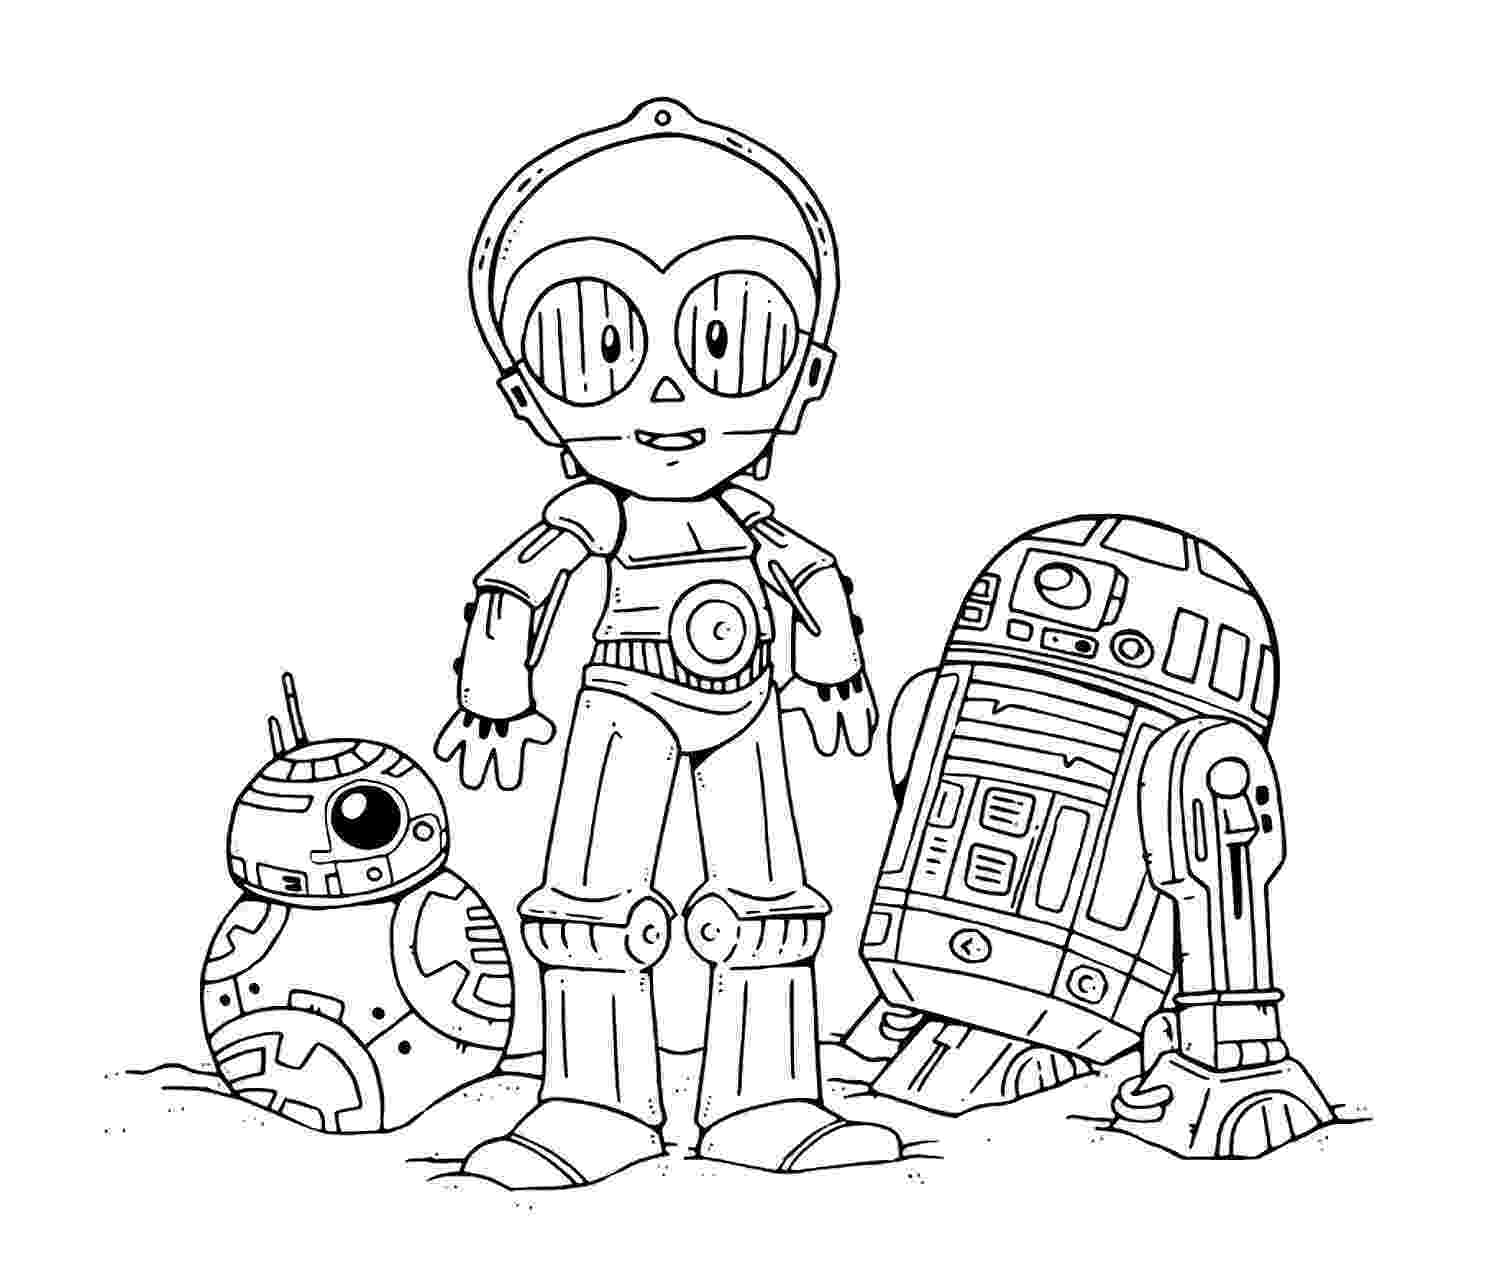 the clone wars coloring pages star wars clone wars coloring pages getcoloringpagescom coloring wars pages clone the